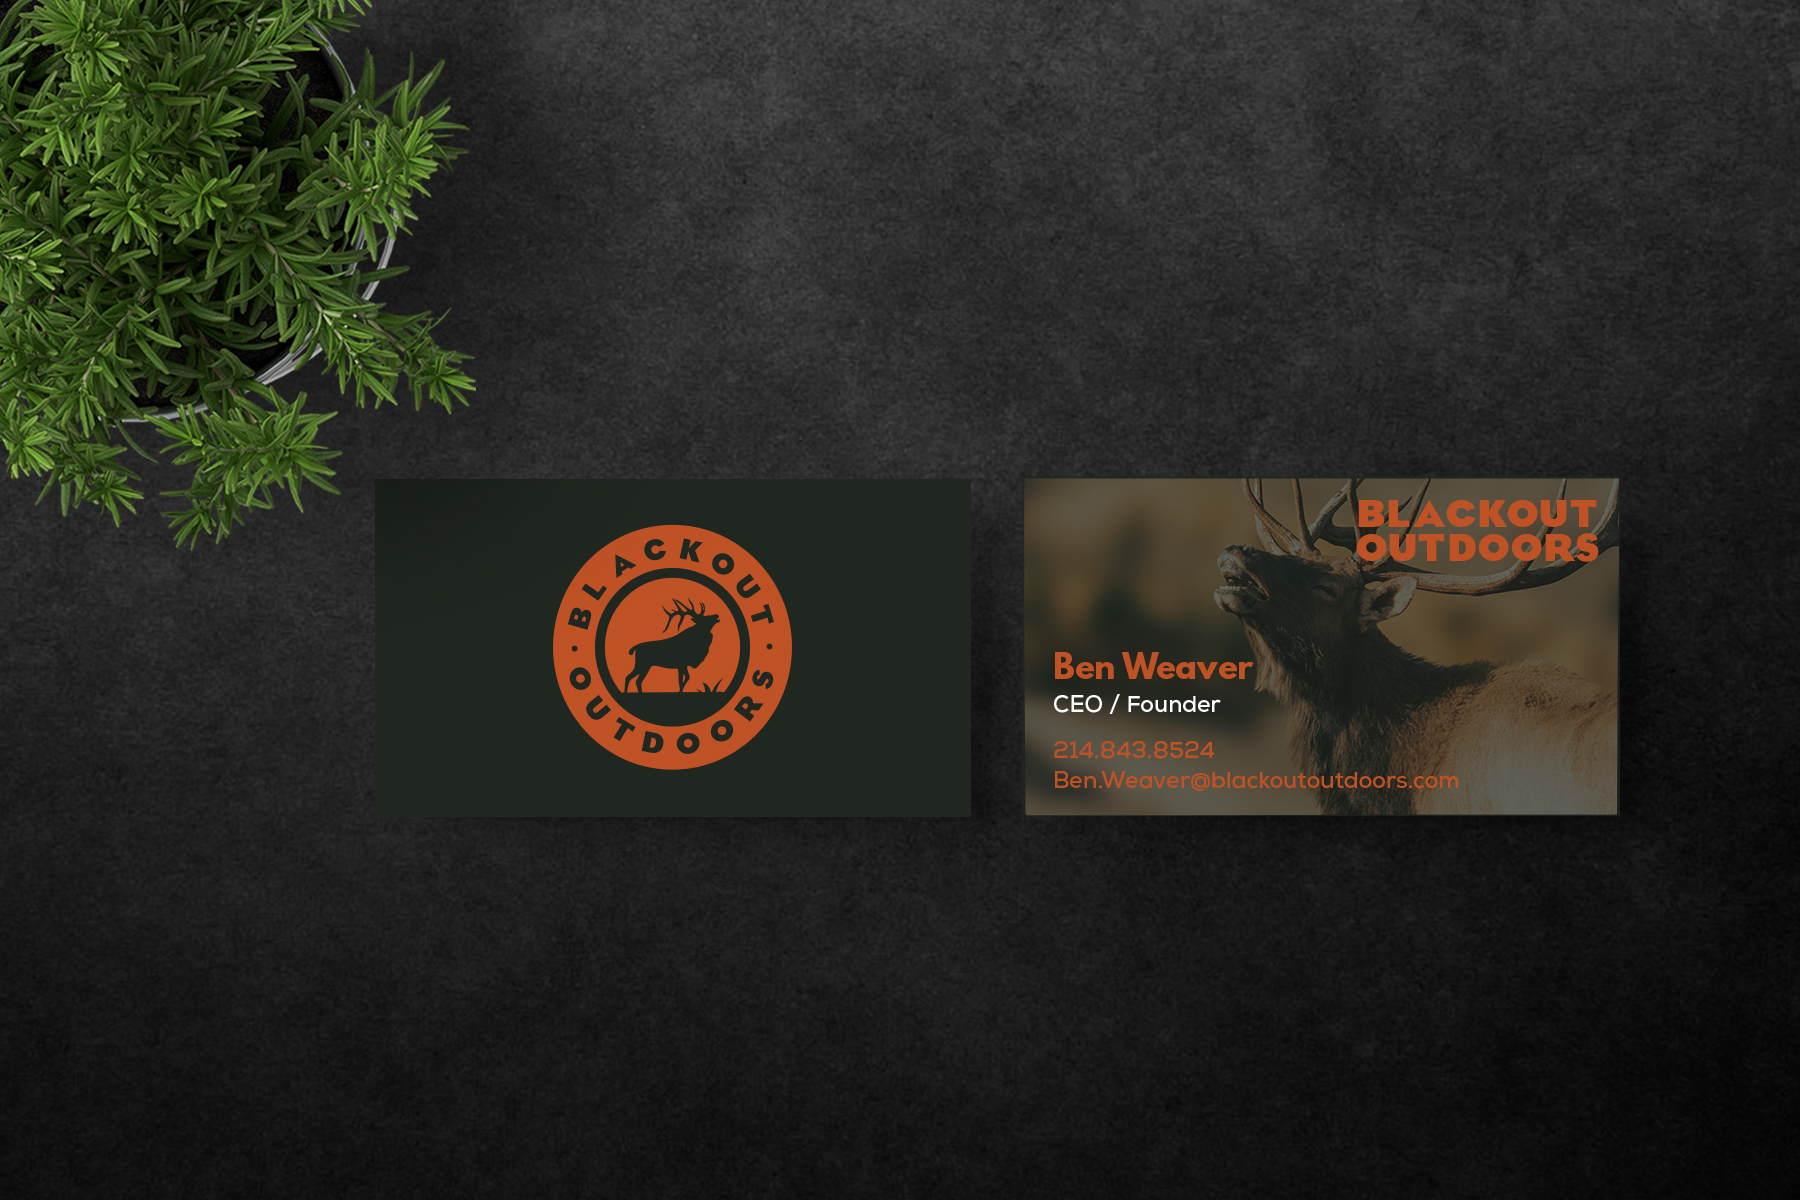 Blackout_Outdoors_Business_Cards.jpg